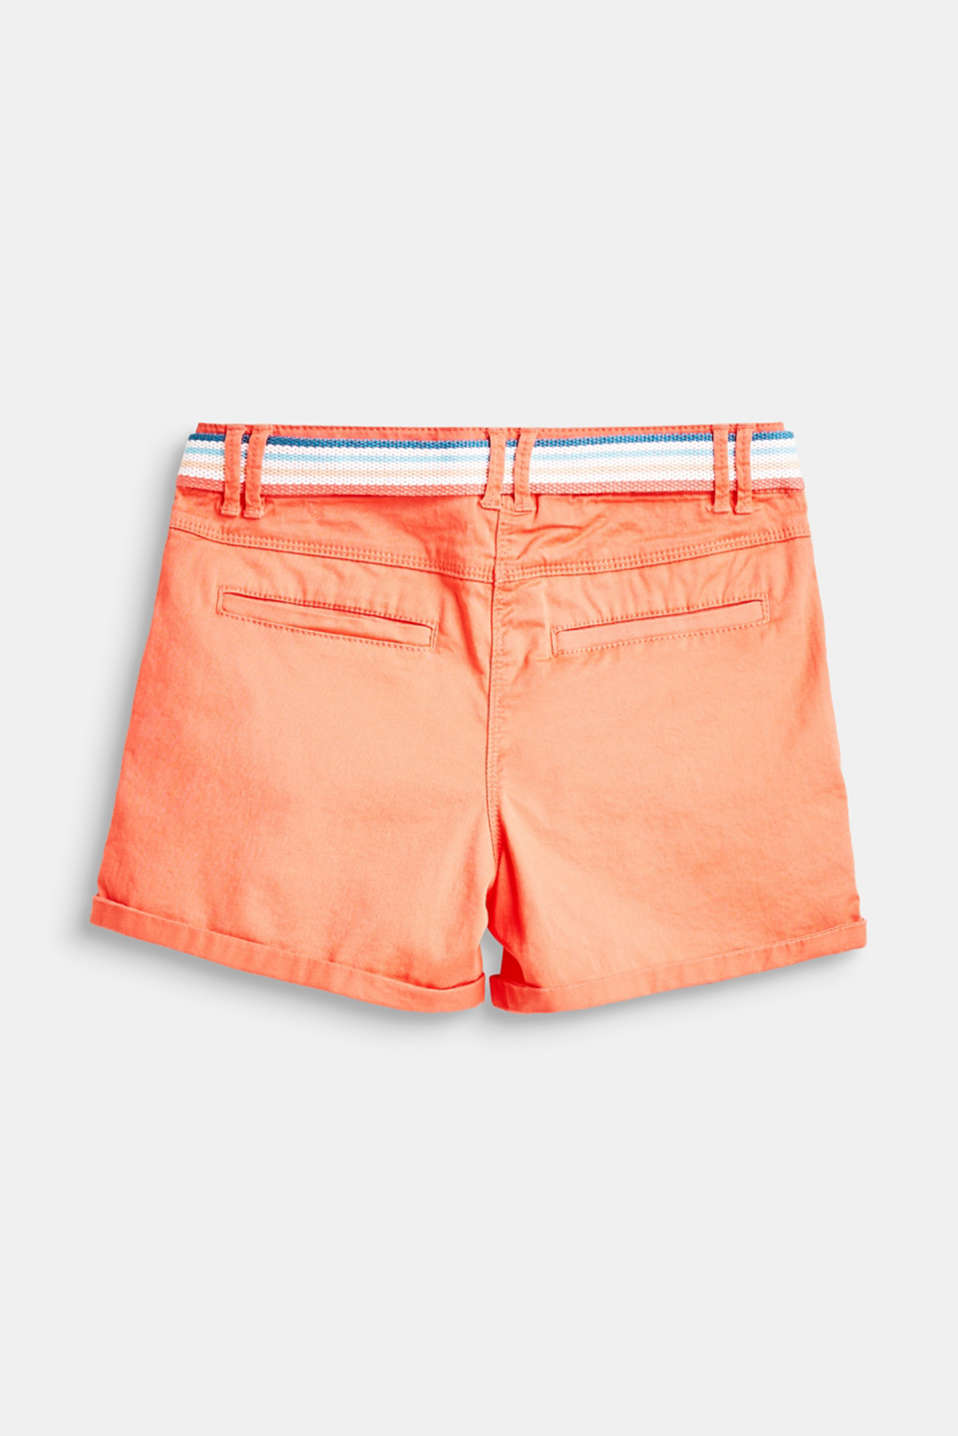 Cotton shorts with belt and adjustable waistband